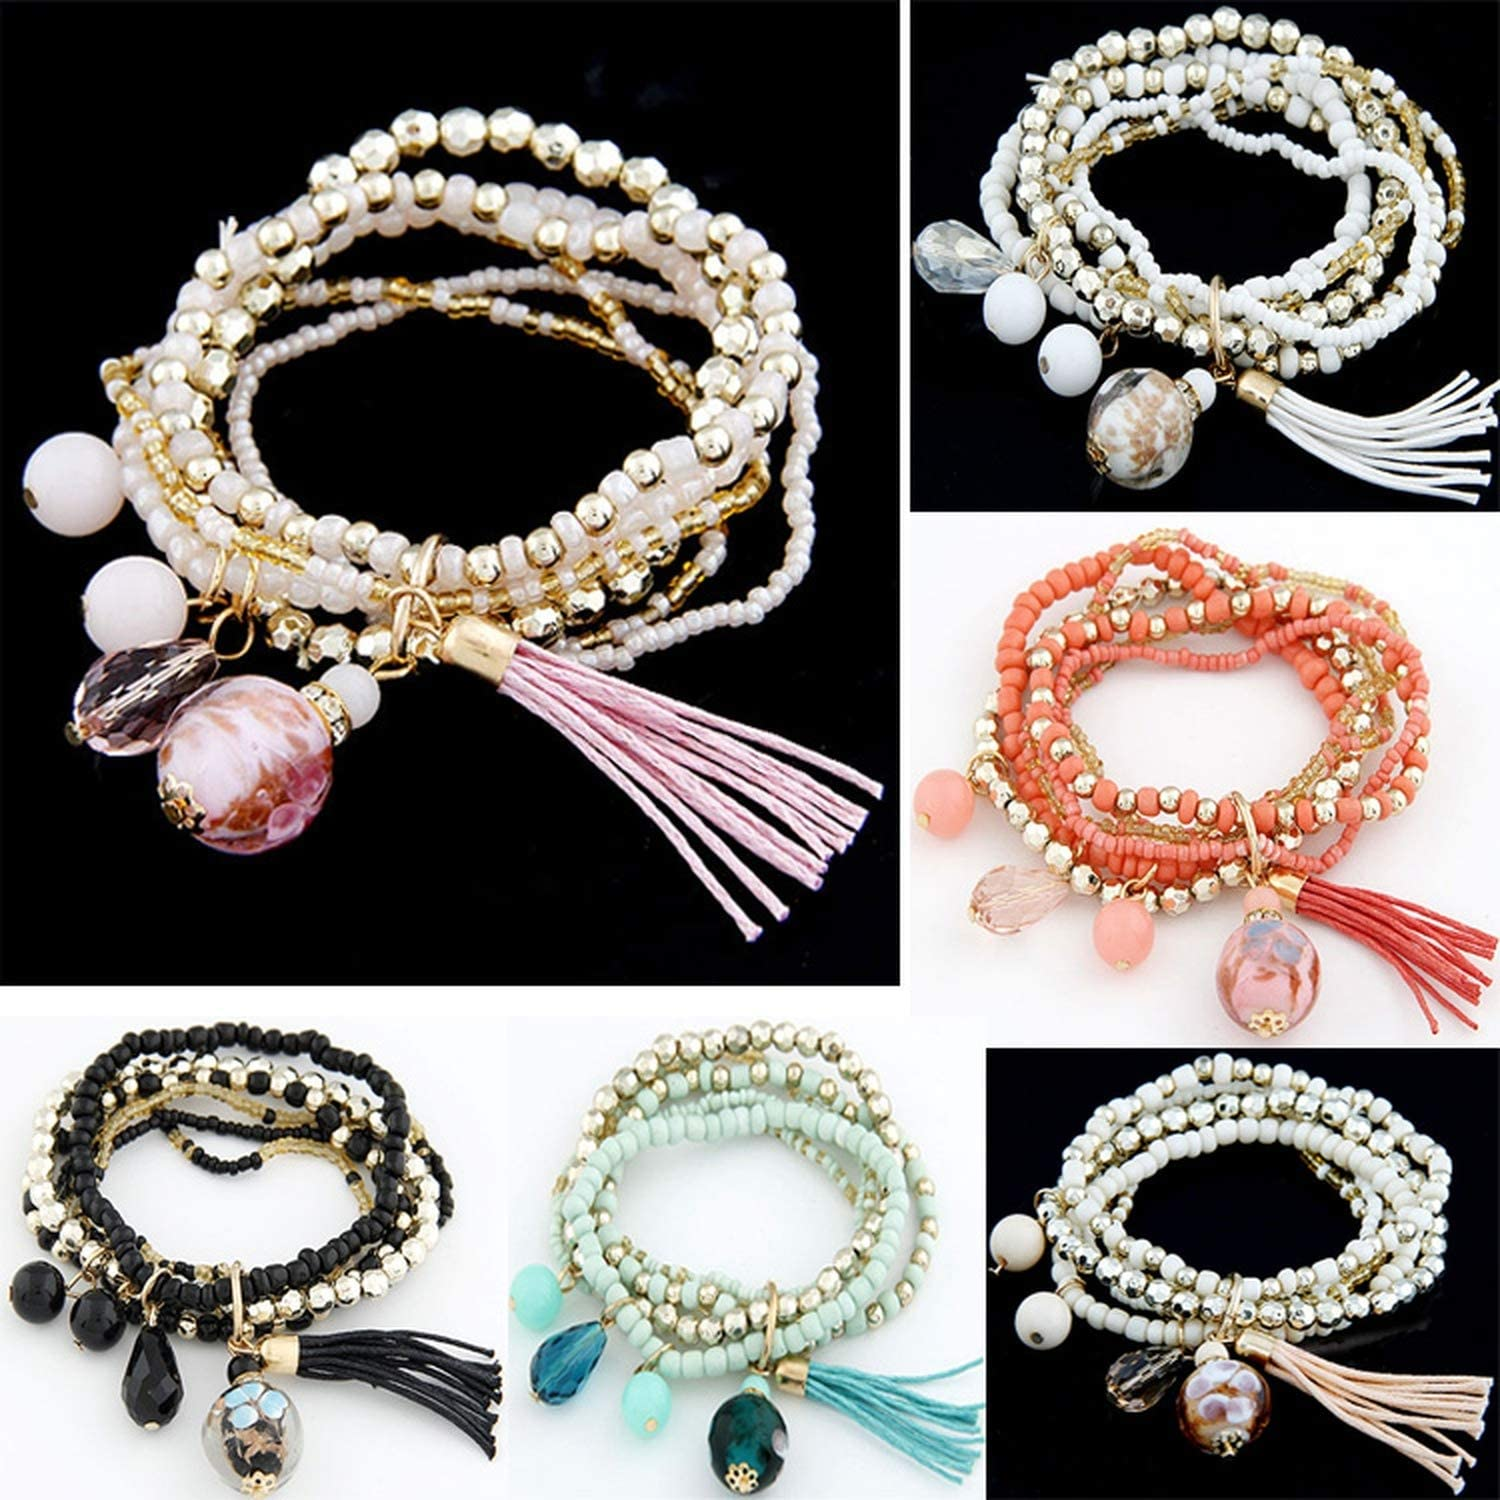 LM-wy Fashion Jewelry Handmade Bohemian Style Candy Color Multilayer Beads Bracelet with Tassels Pulseira Bracelets for Women